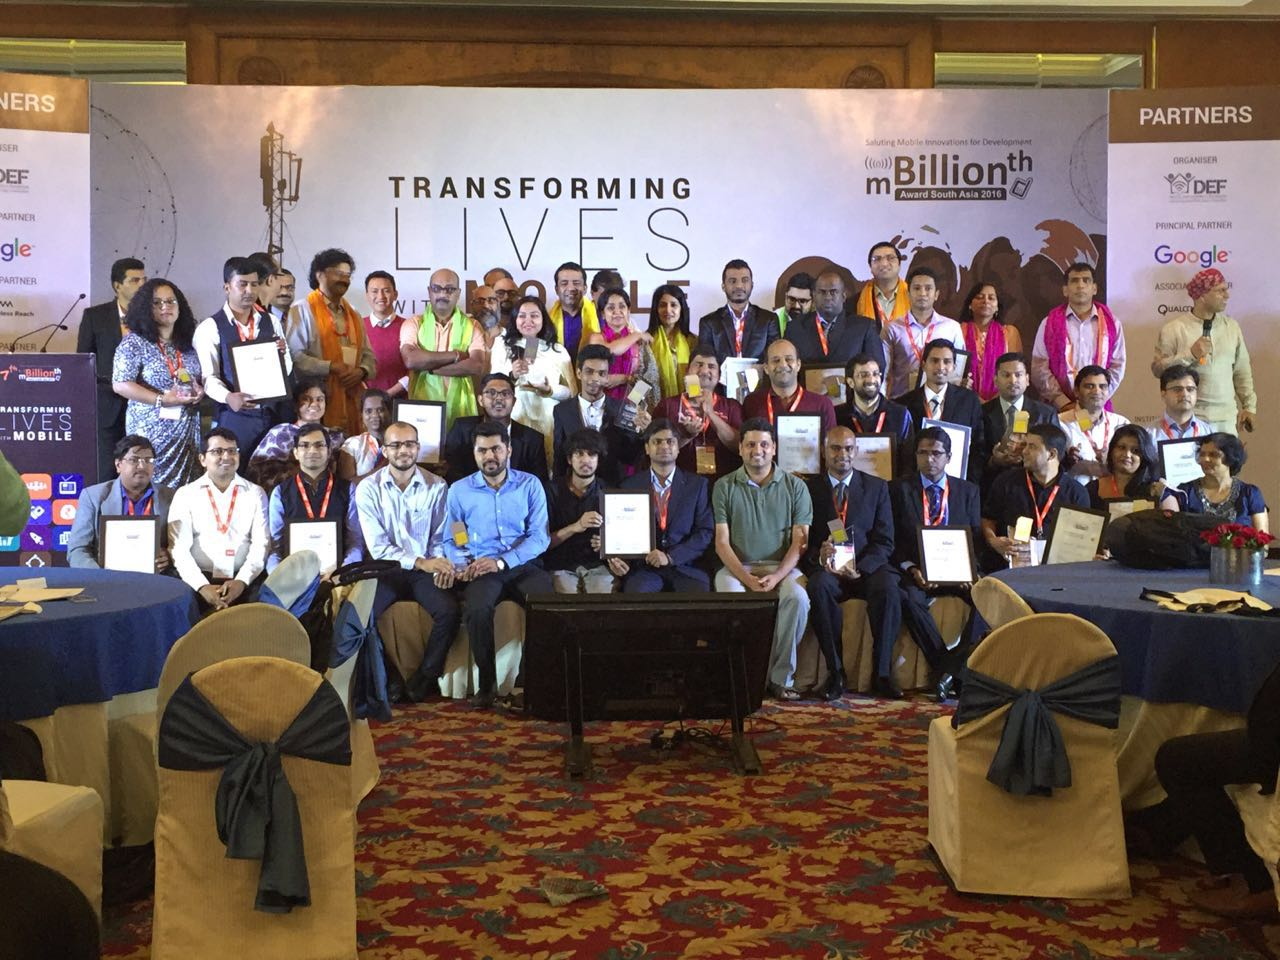 @matrubharti and other Proud winners of #mBillionth2016 @mBillionth https://t.co/YVqr8JNMrt